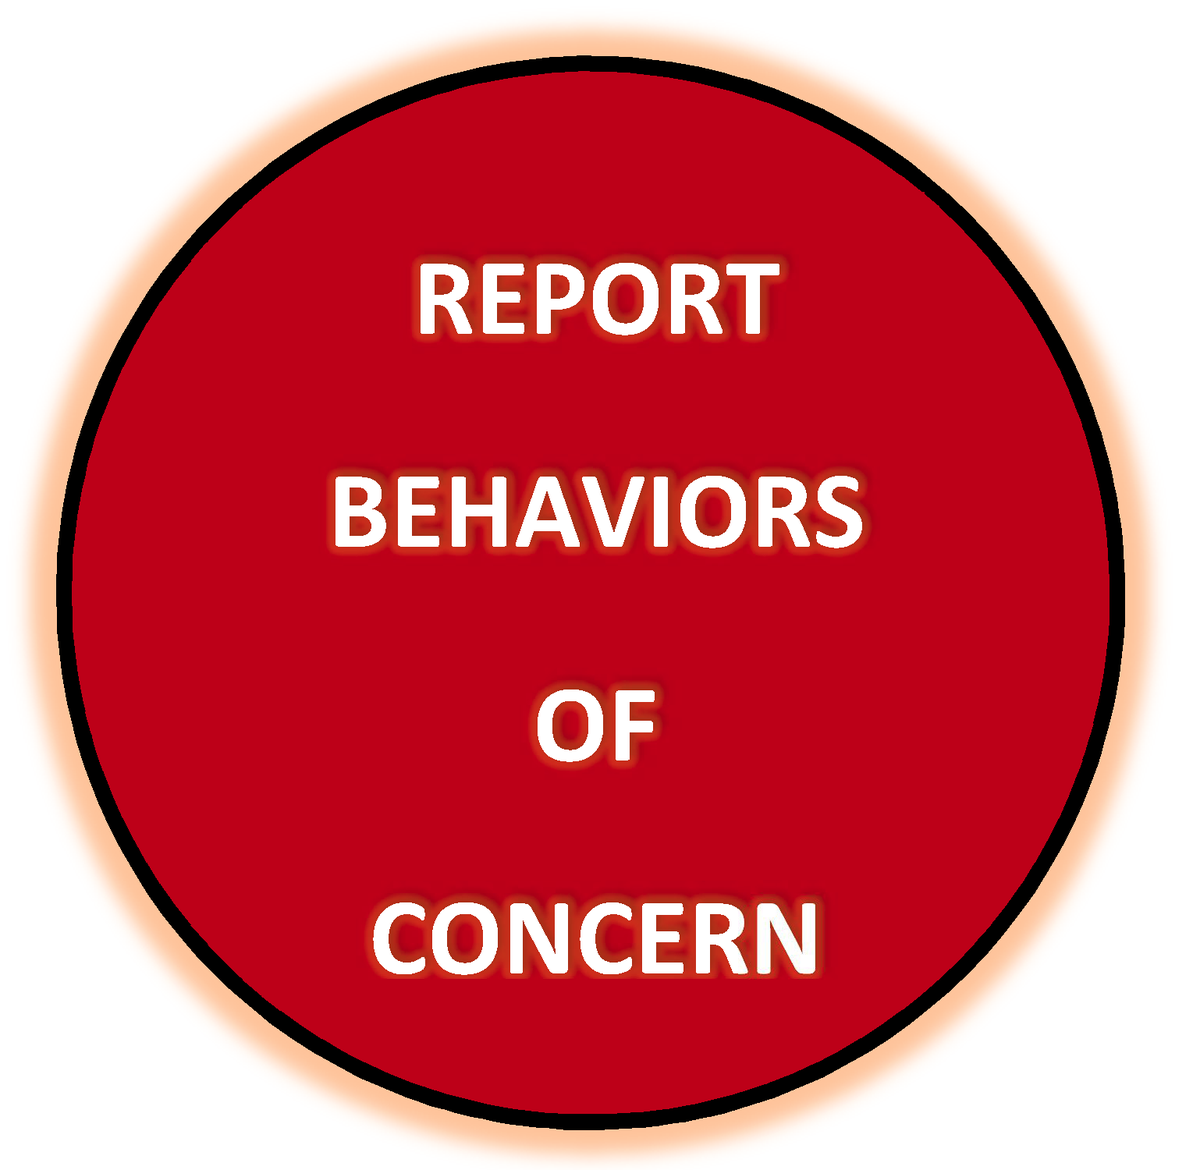 Report Behaviors of Concern